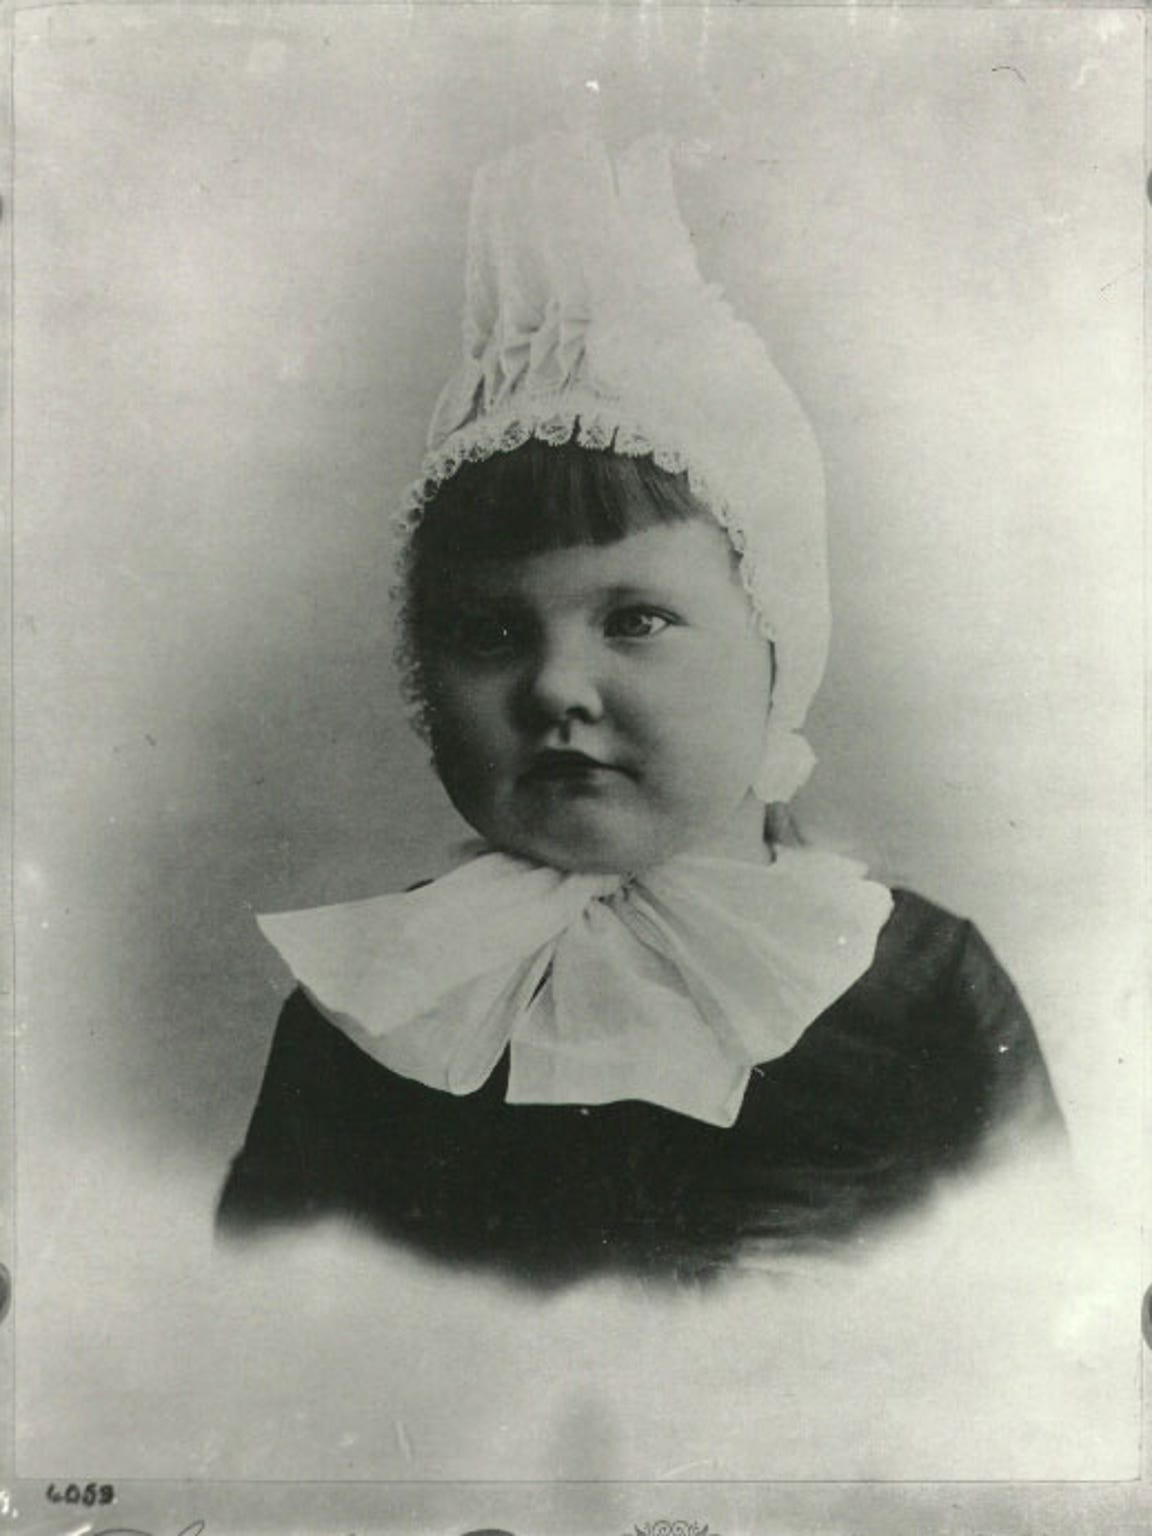 Marjorie Merriweather Post as a young child.